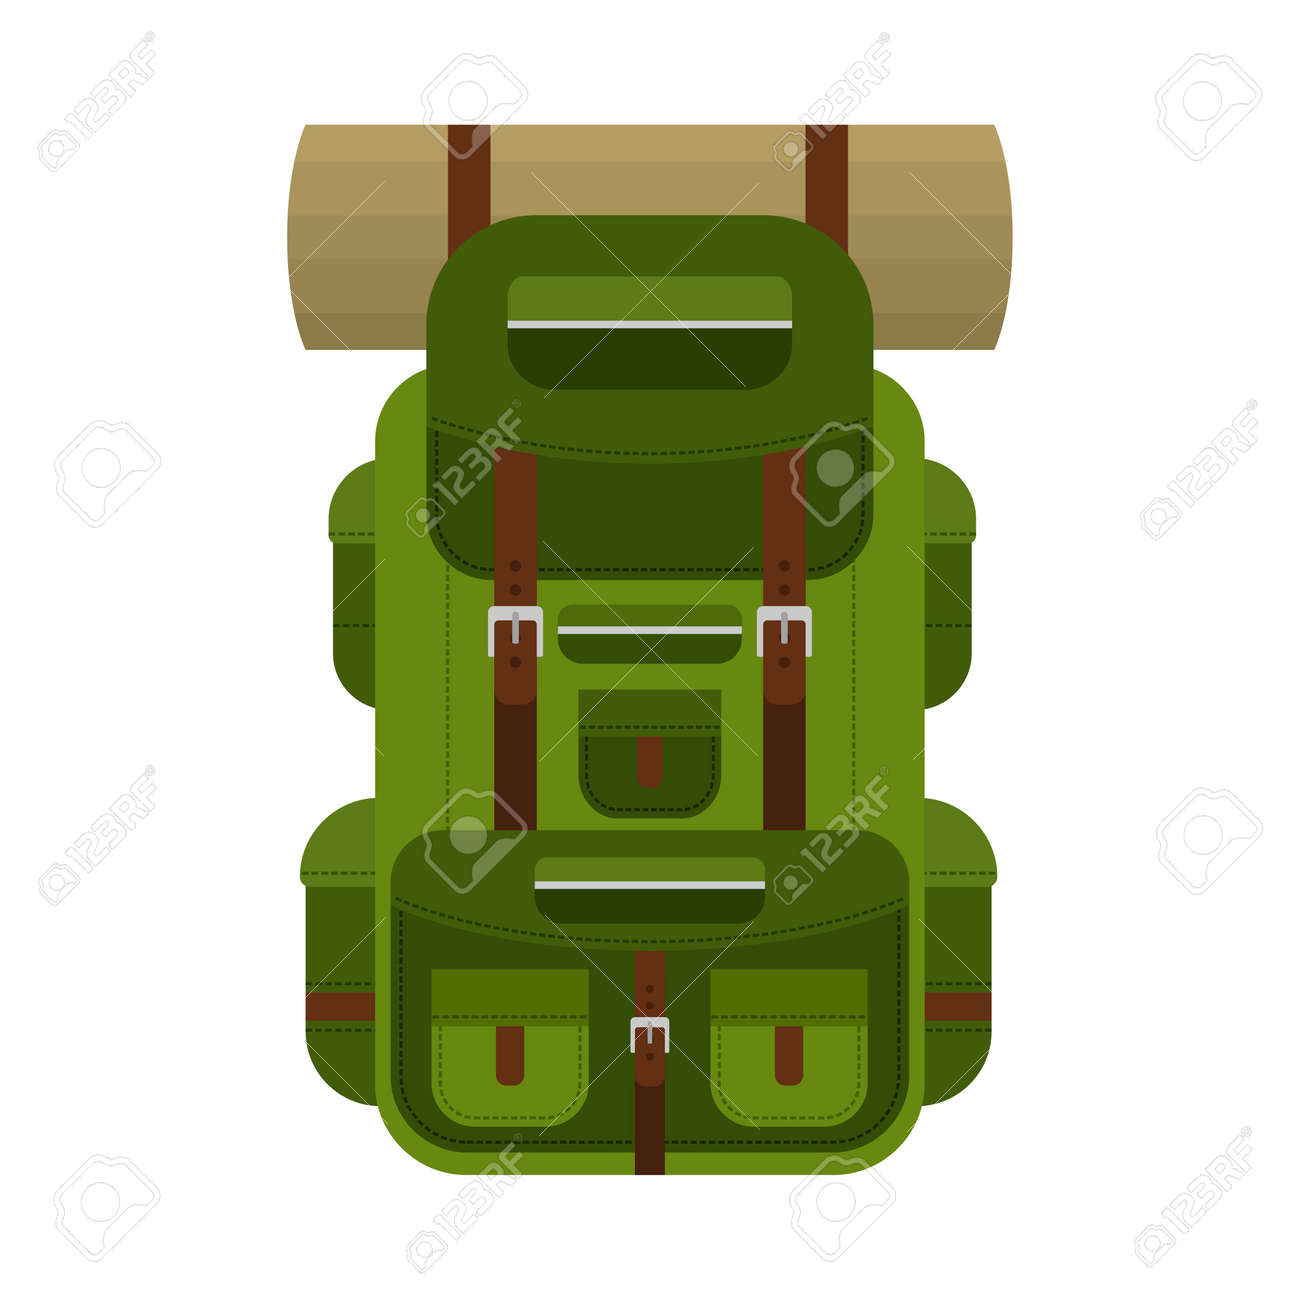 Camping backpack for hiking, travel and tourism isolated on white background. Backpack for camp gears, mats, sleeping bags and etc. Vector illustration - 167032957